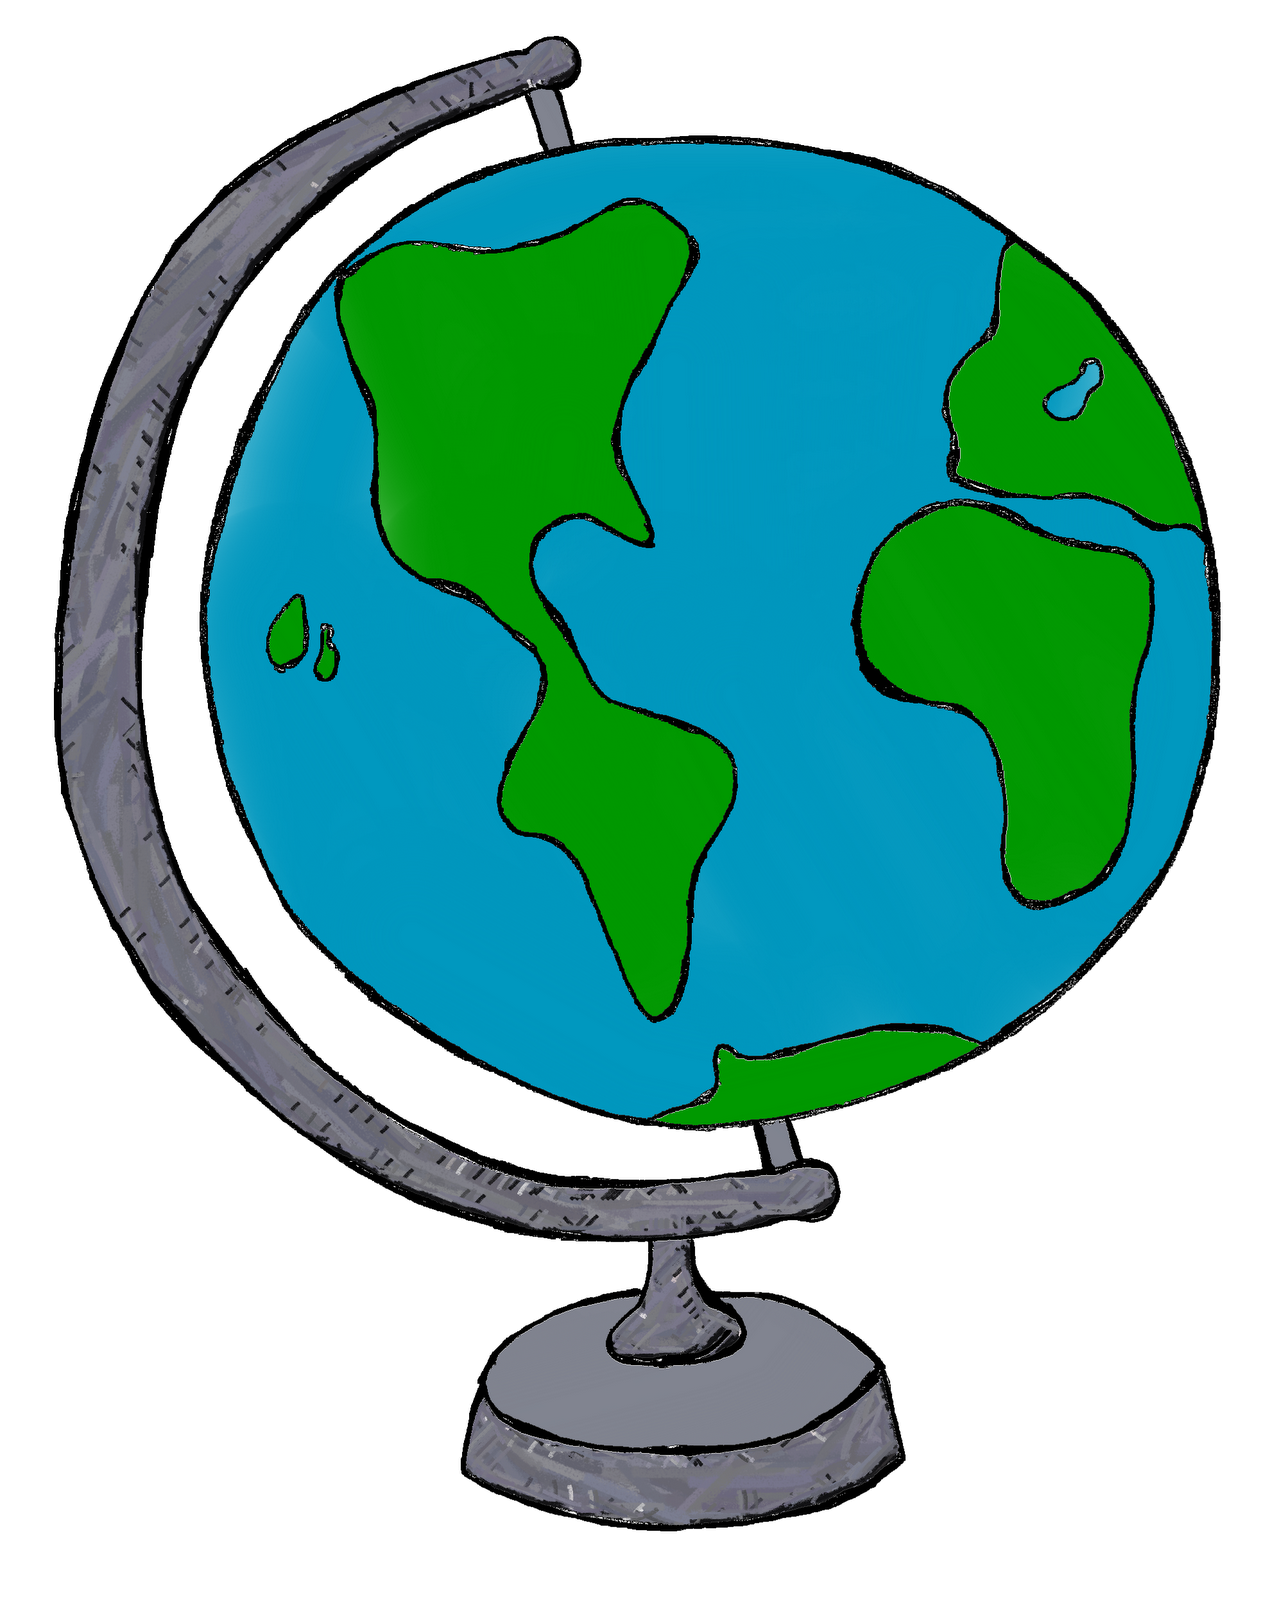 image royalty free stock Earth clip art animated. Teaching clipart images